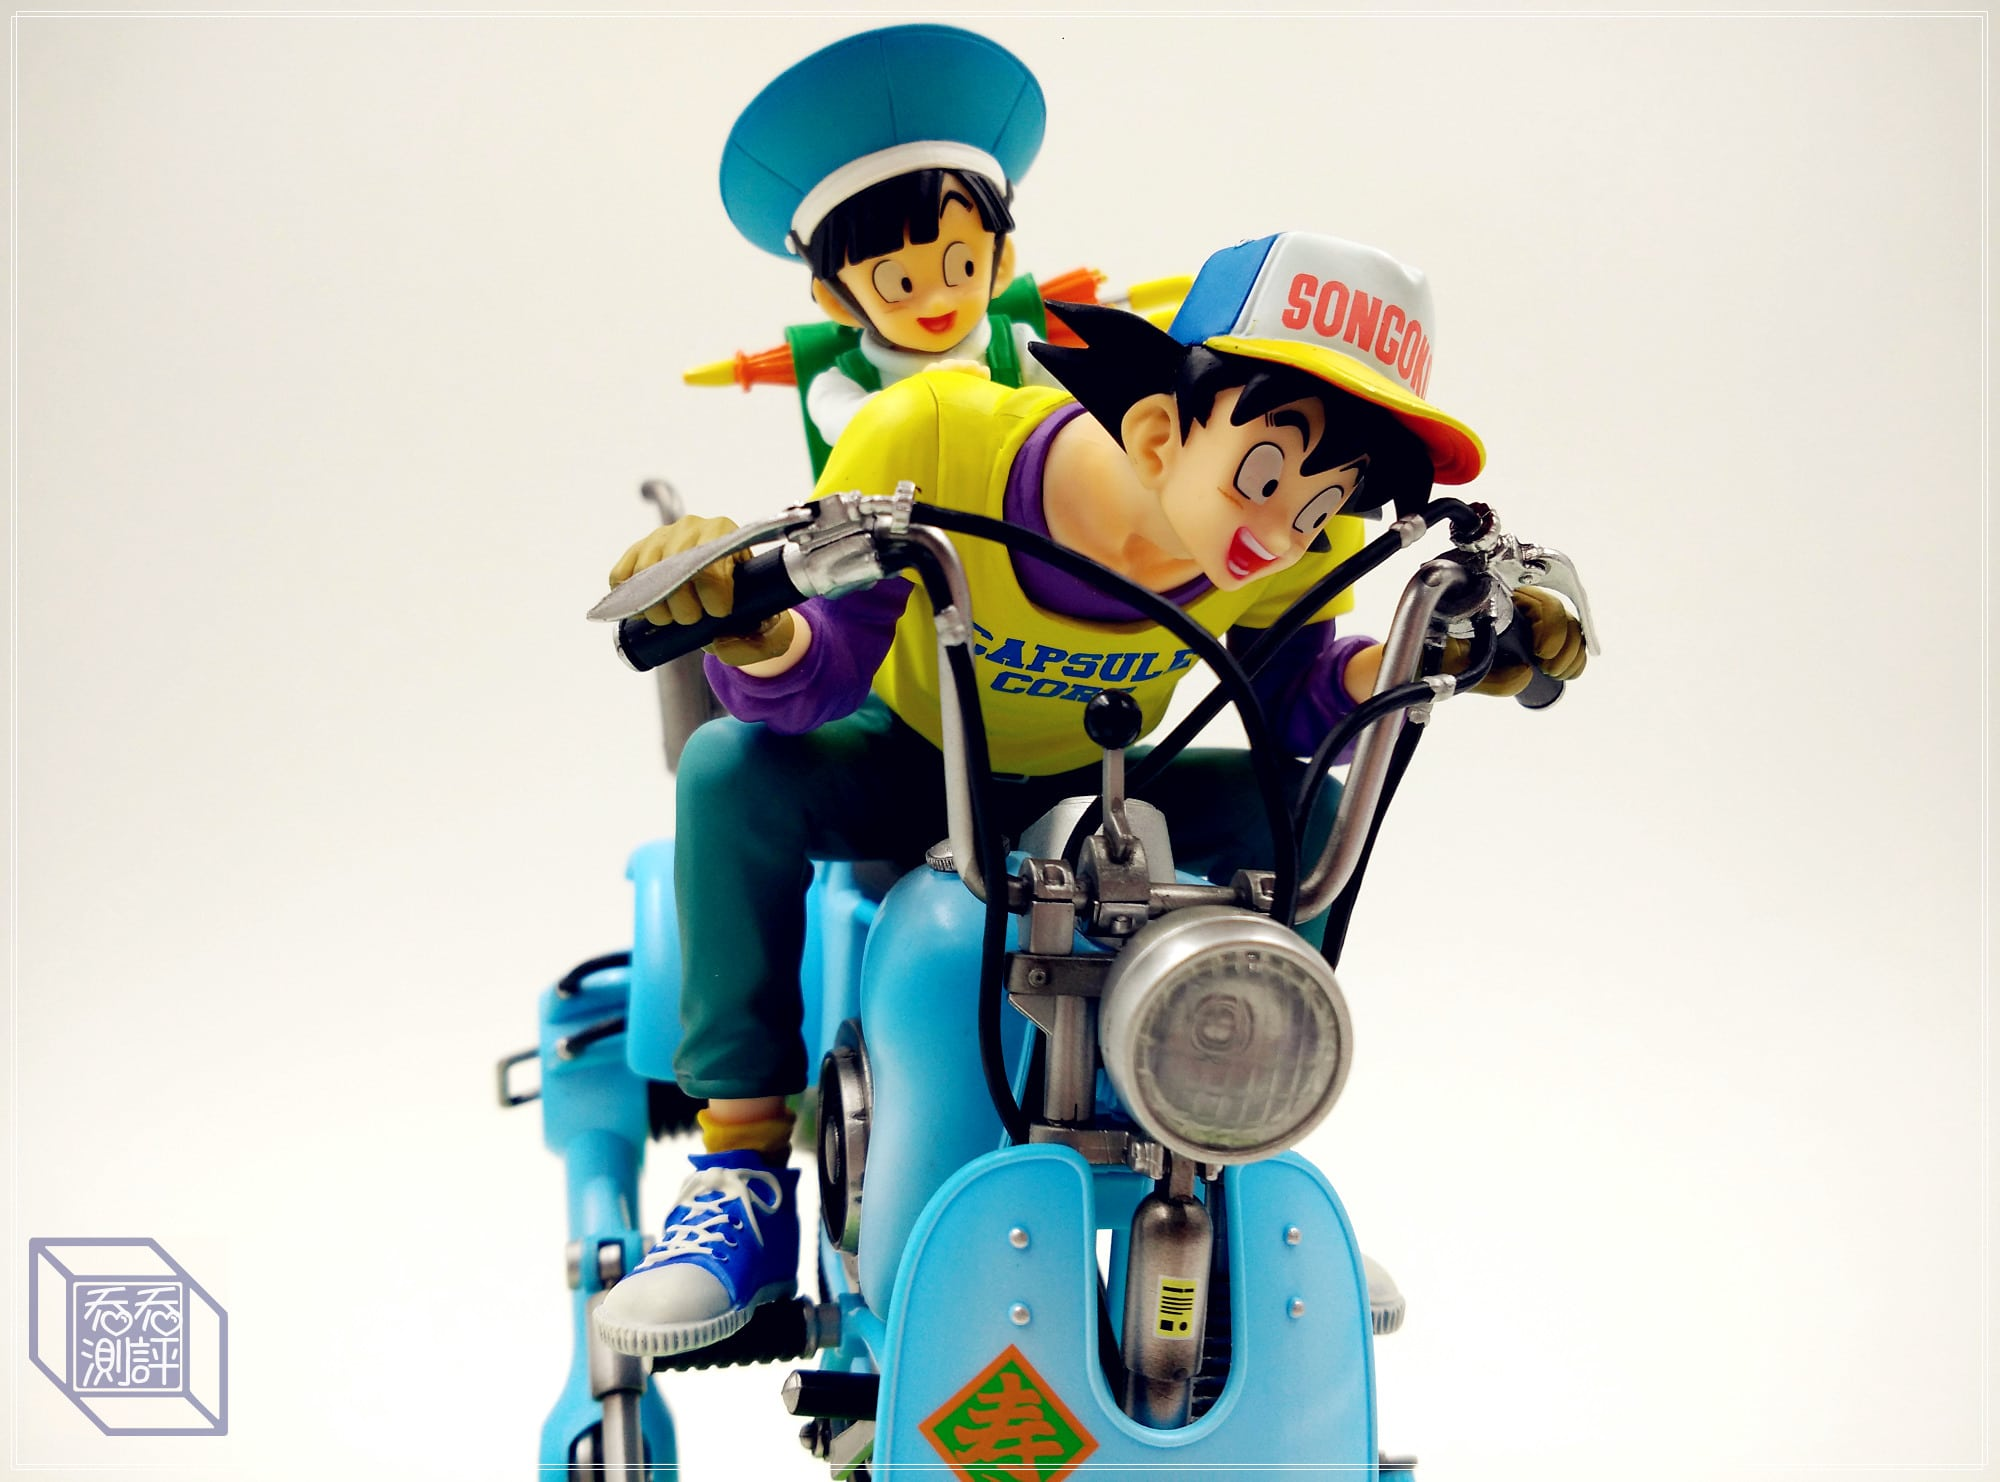 DRAGON BALL Son Gokū & Sun Gōhan motorcycle statue collectibles-Garage Kit Dolls